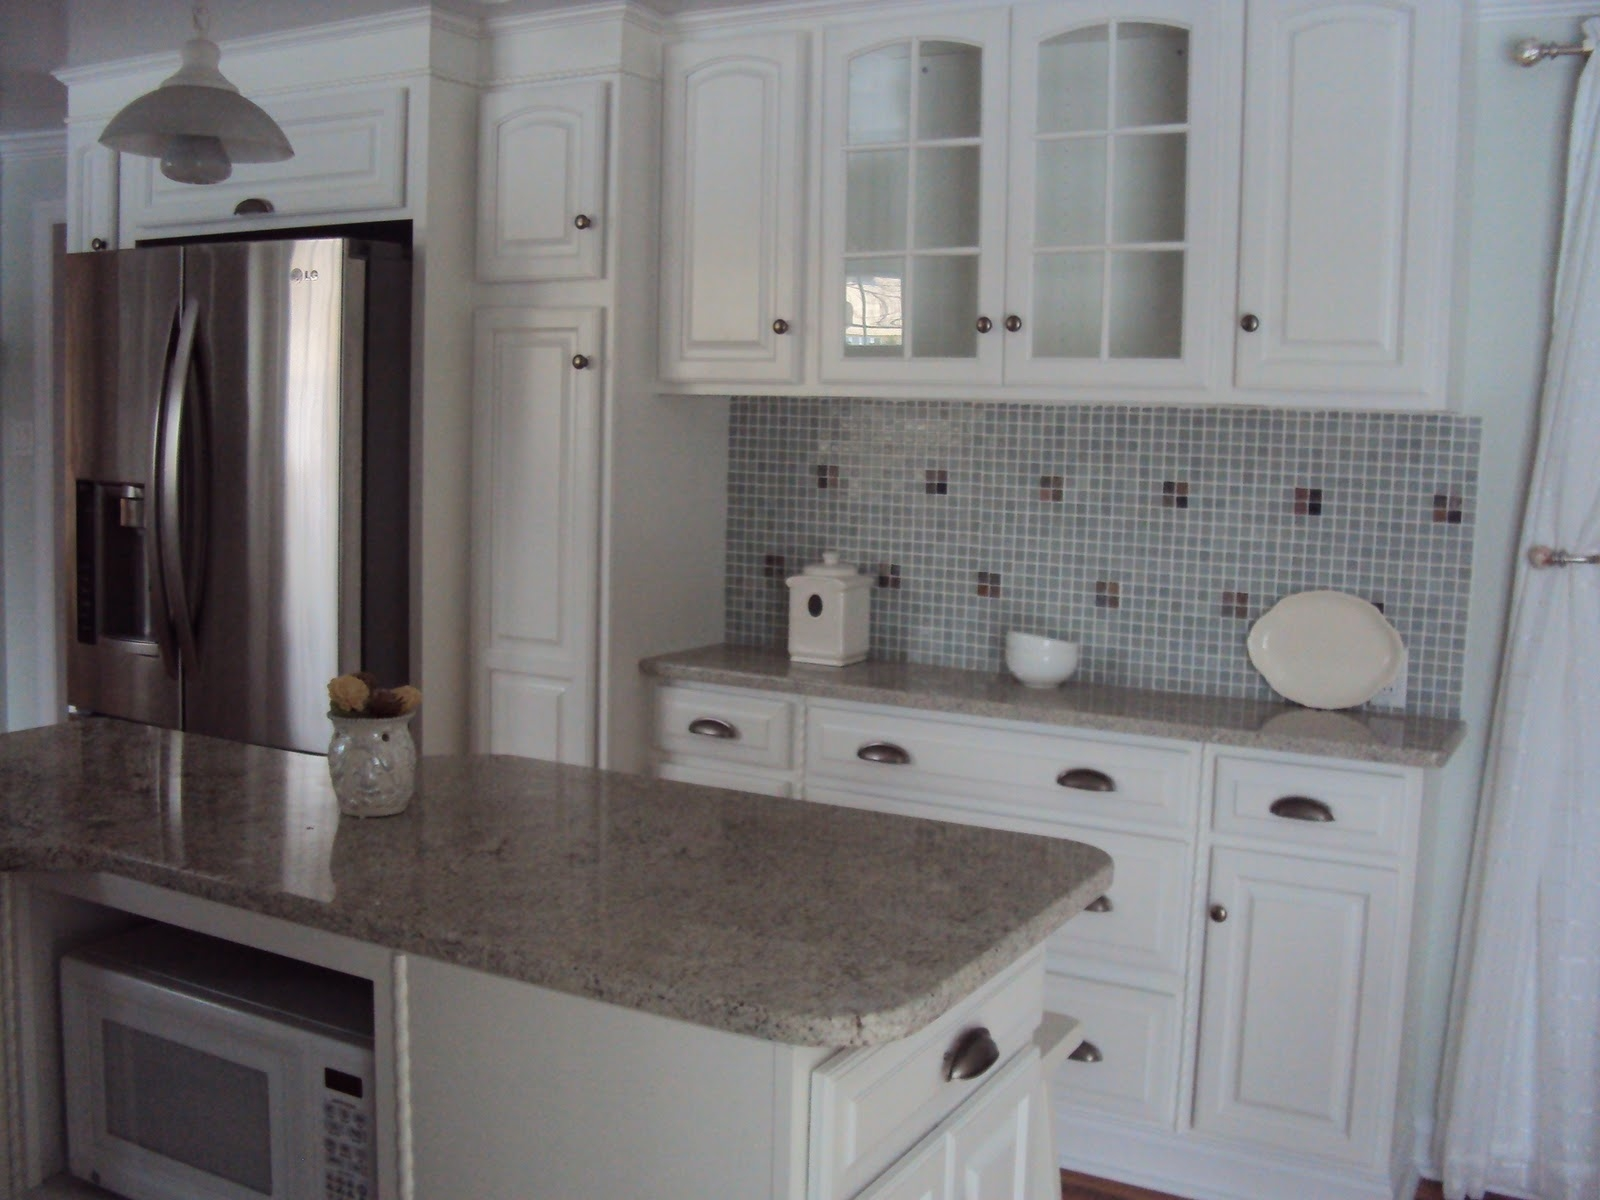 Permalink to 12 Deep Kitchen Cabinets